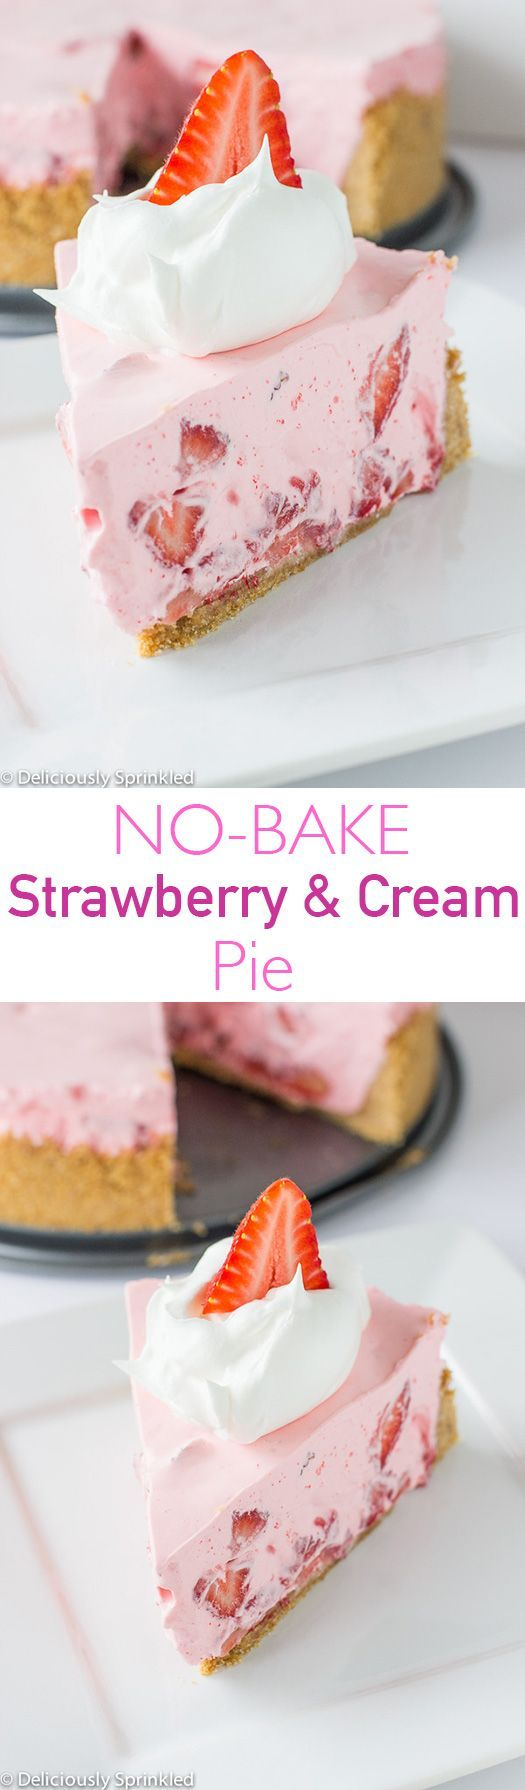 No-Bake Strawberry & Cream Pie - perfect summer dessert!